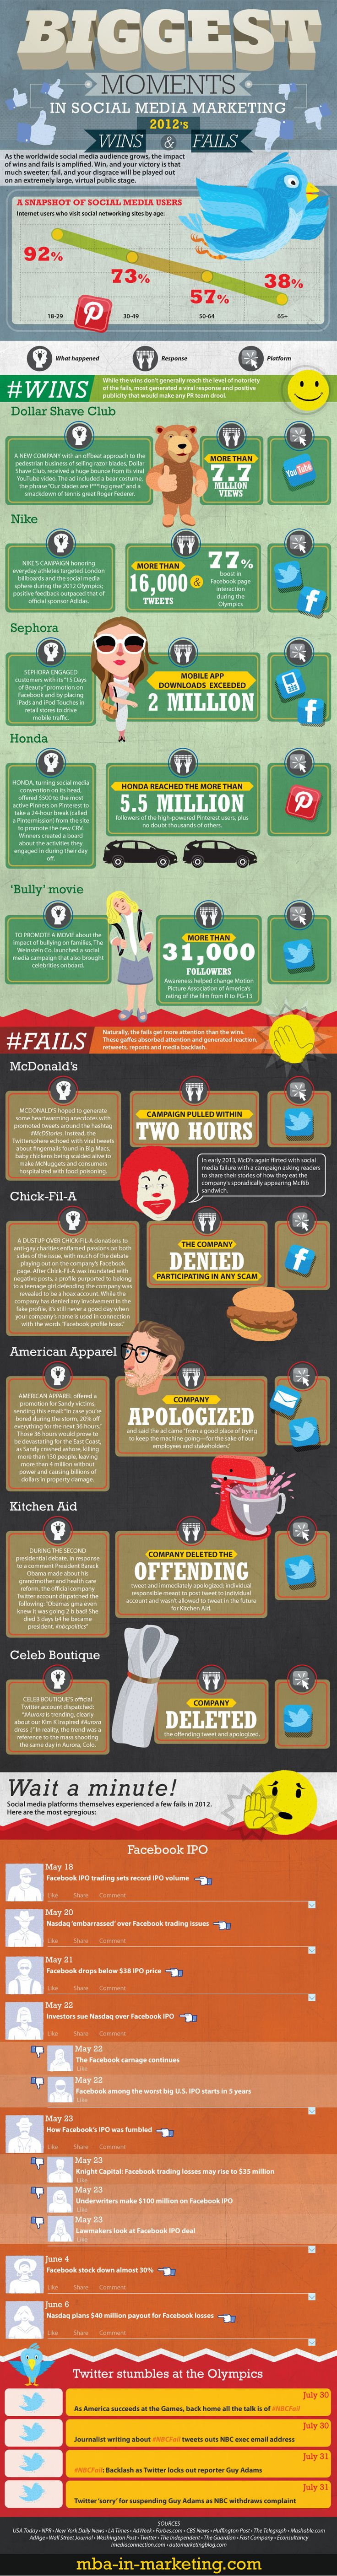 Biggest moments in Social Media Marketing 2012- case study